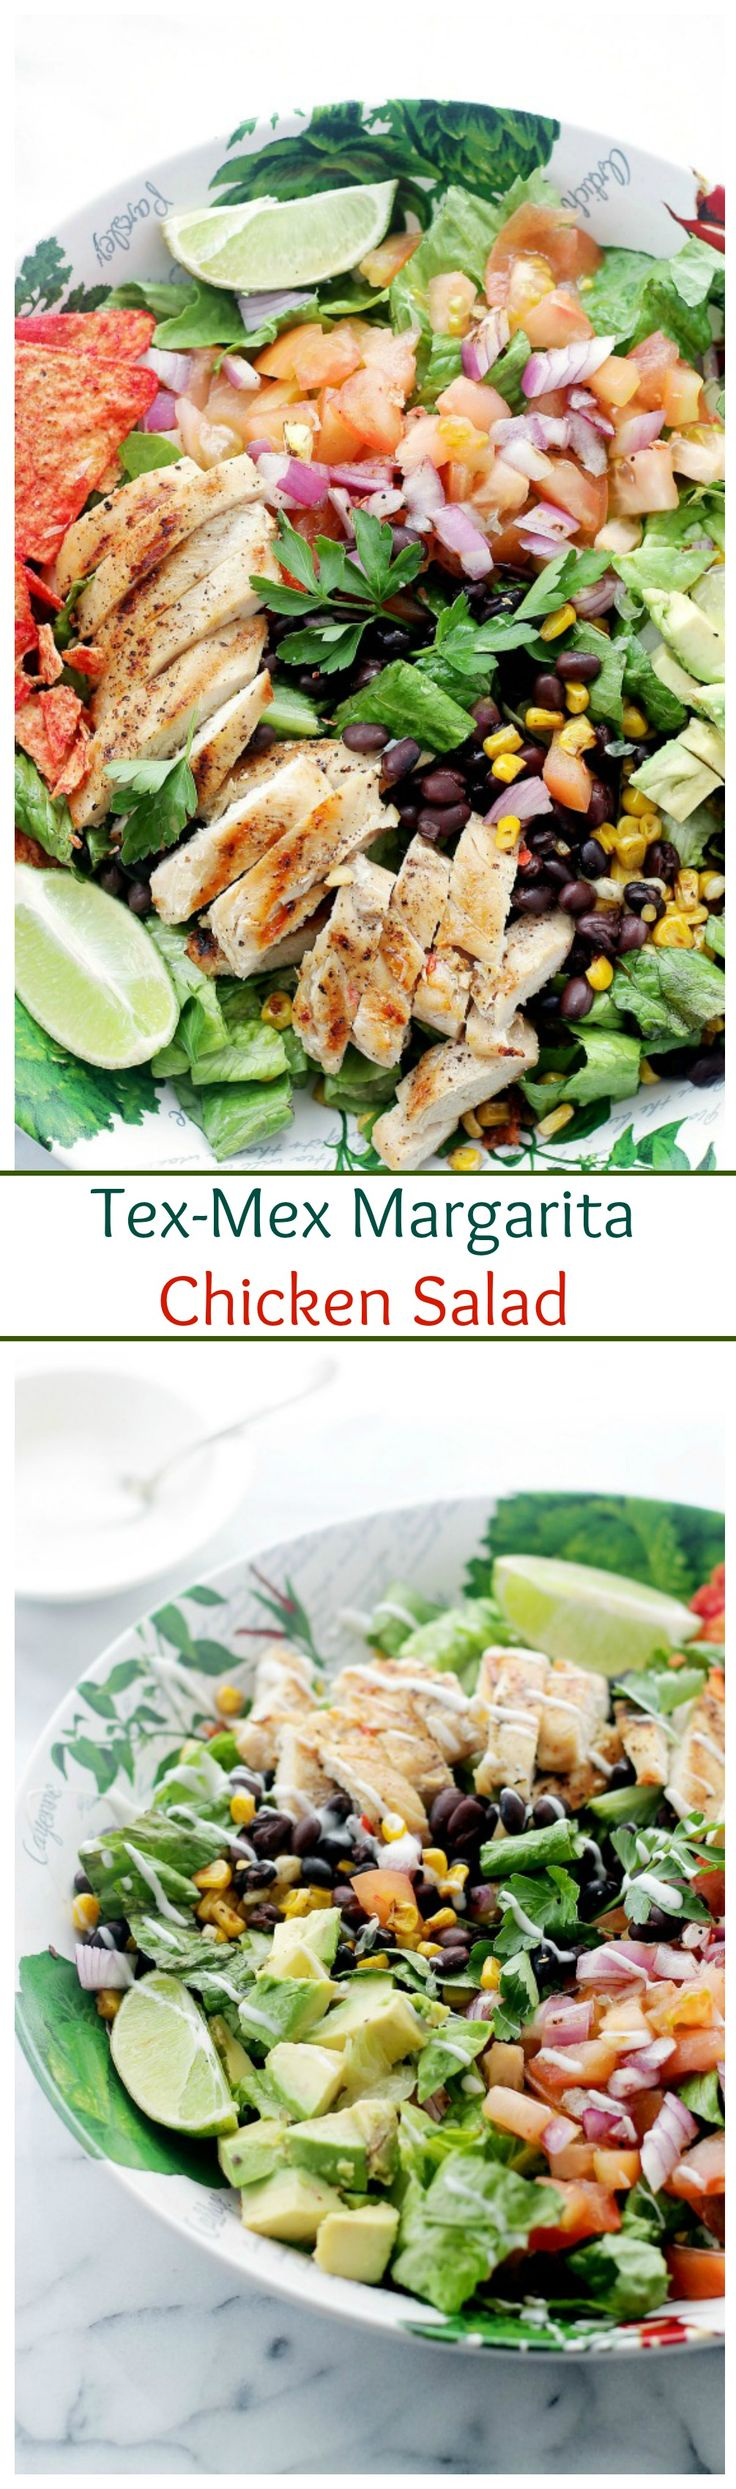 Tender chicken marinated in flavors of margarita mix and lime, served atop a beautiful, colorful tex-mex salad.